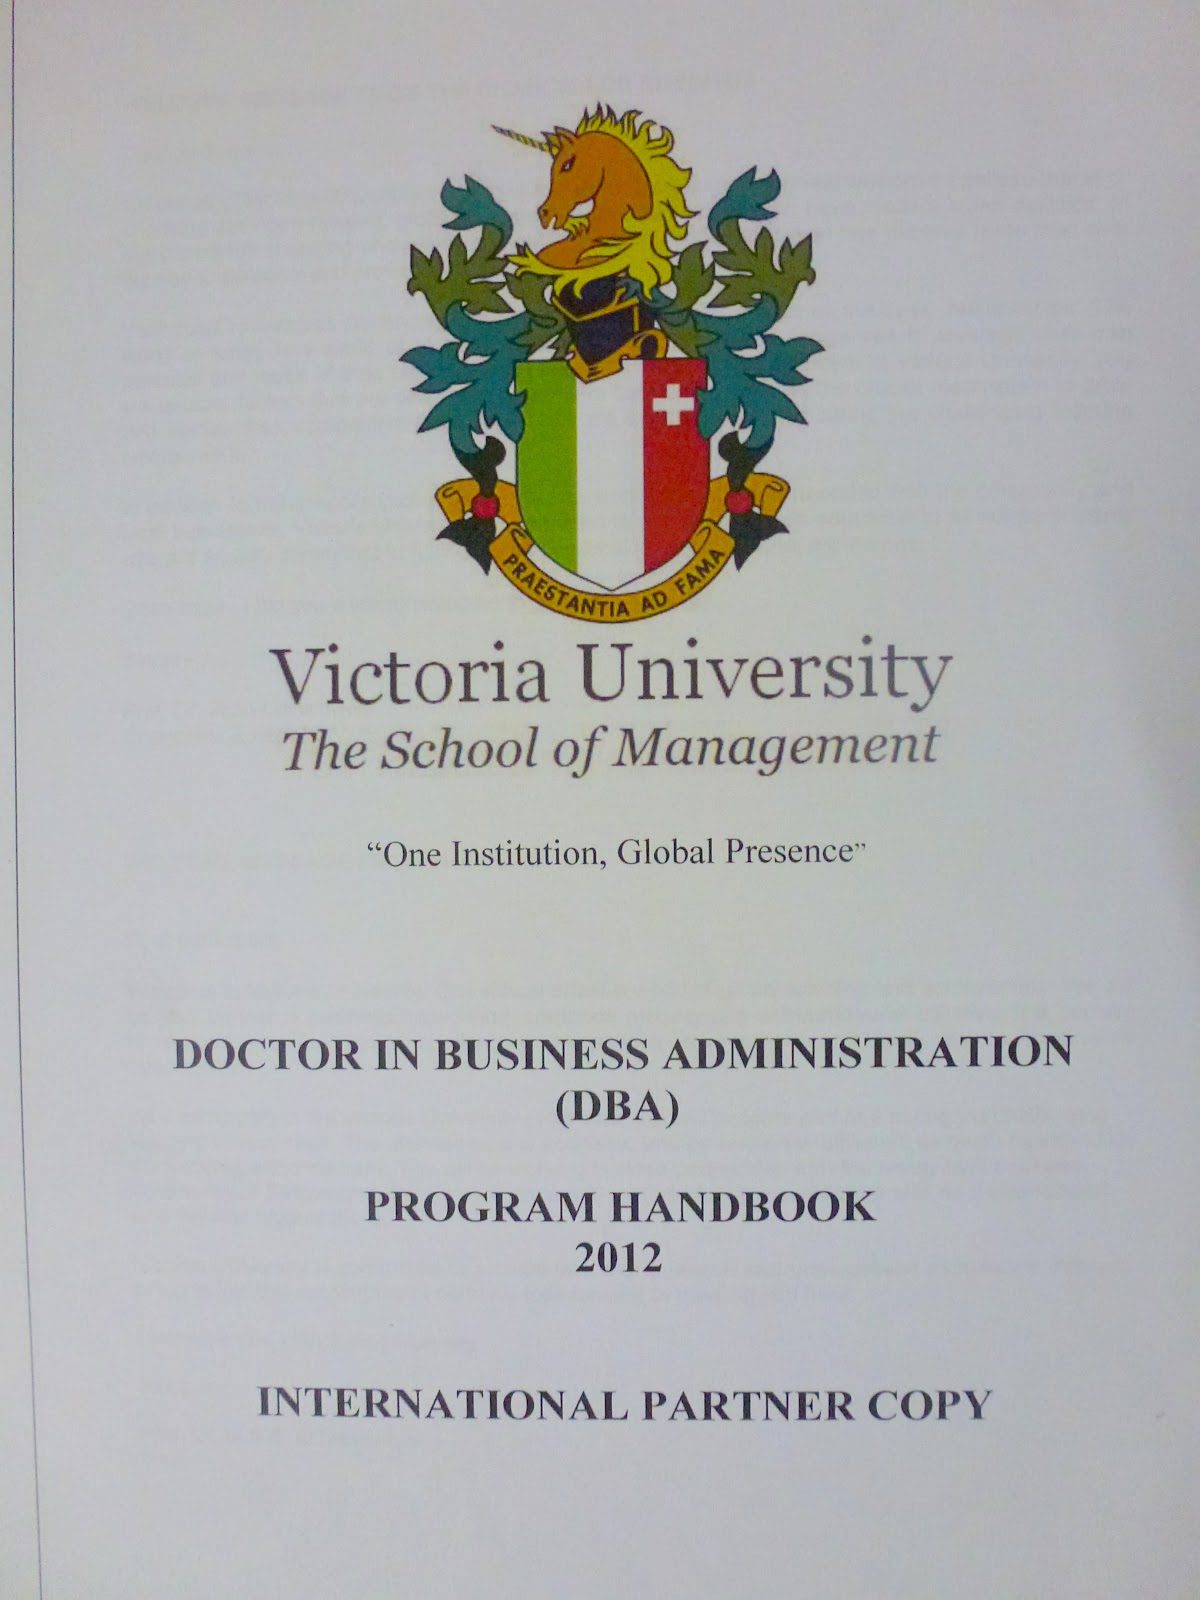 Doctoral thesis construction management distance learning business